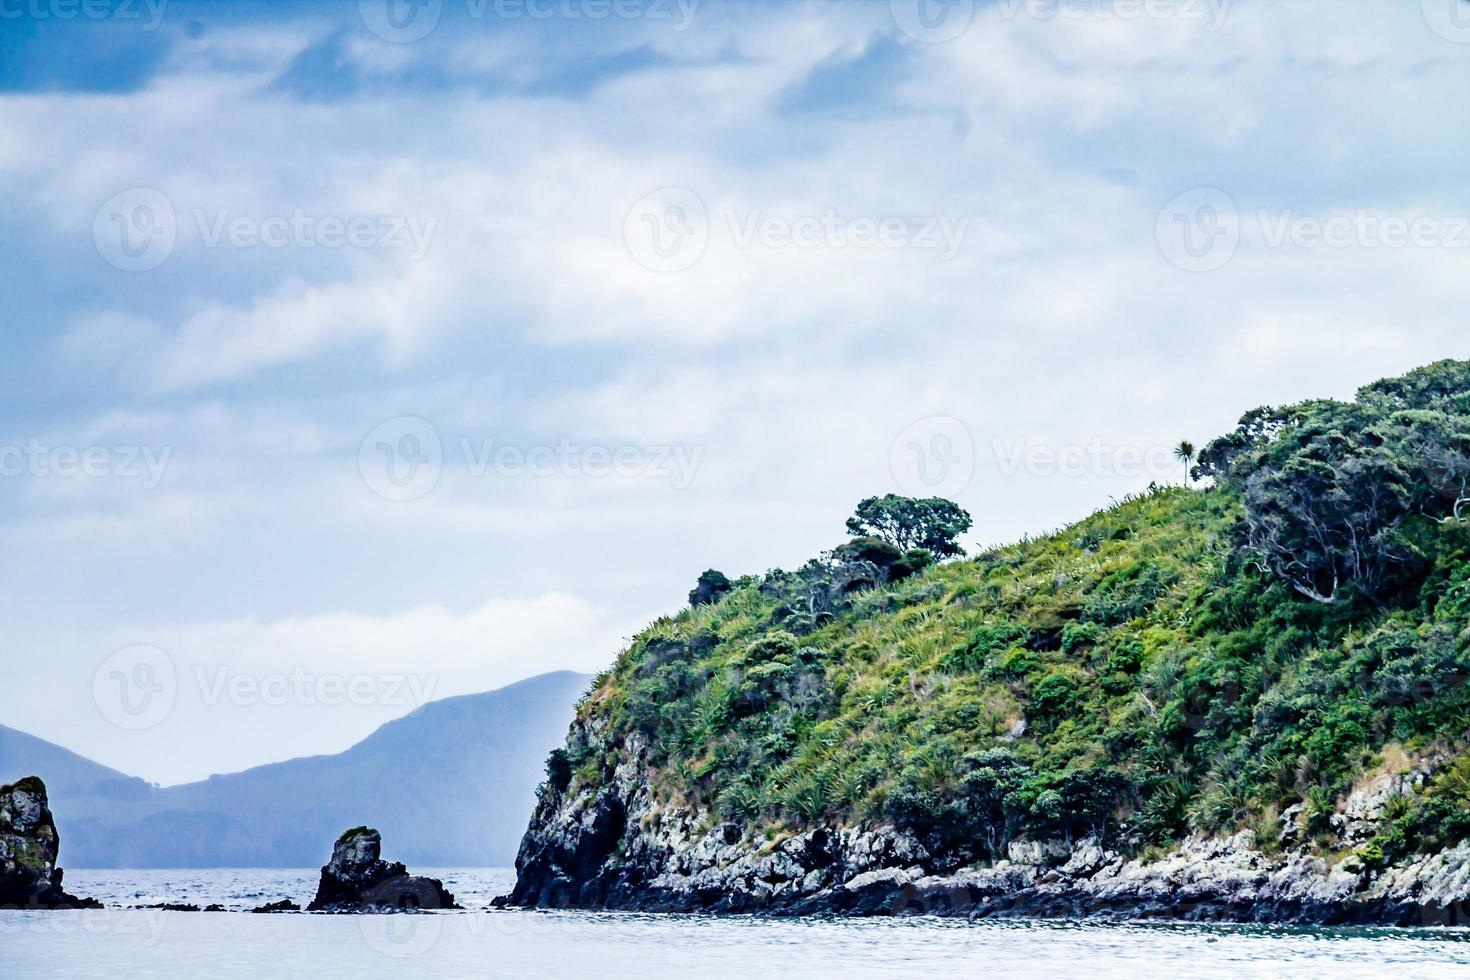 Views of the Islands from a charter boat. Bay of Islands, New Zeland photo